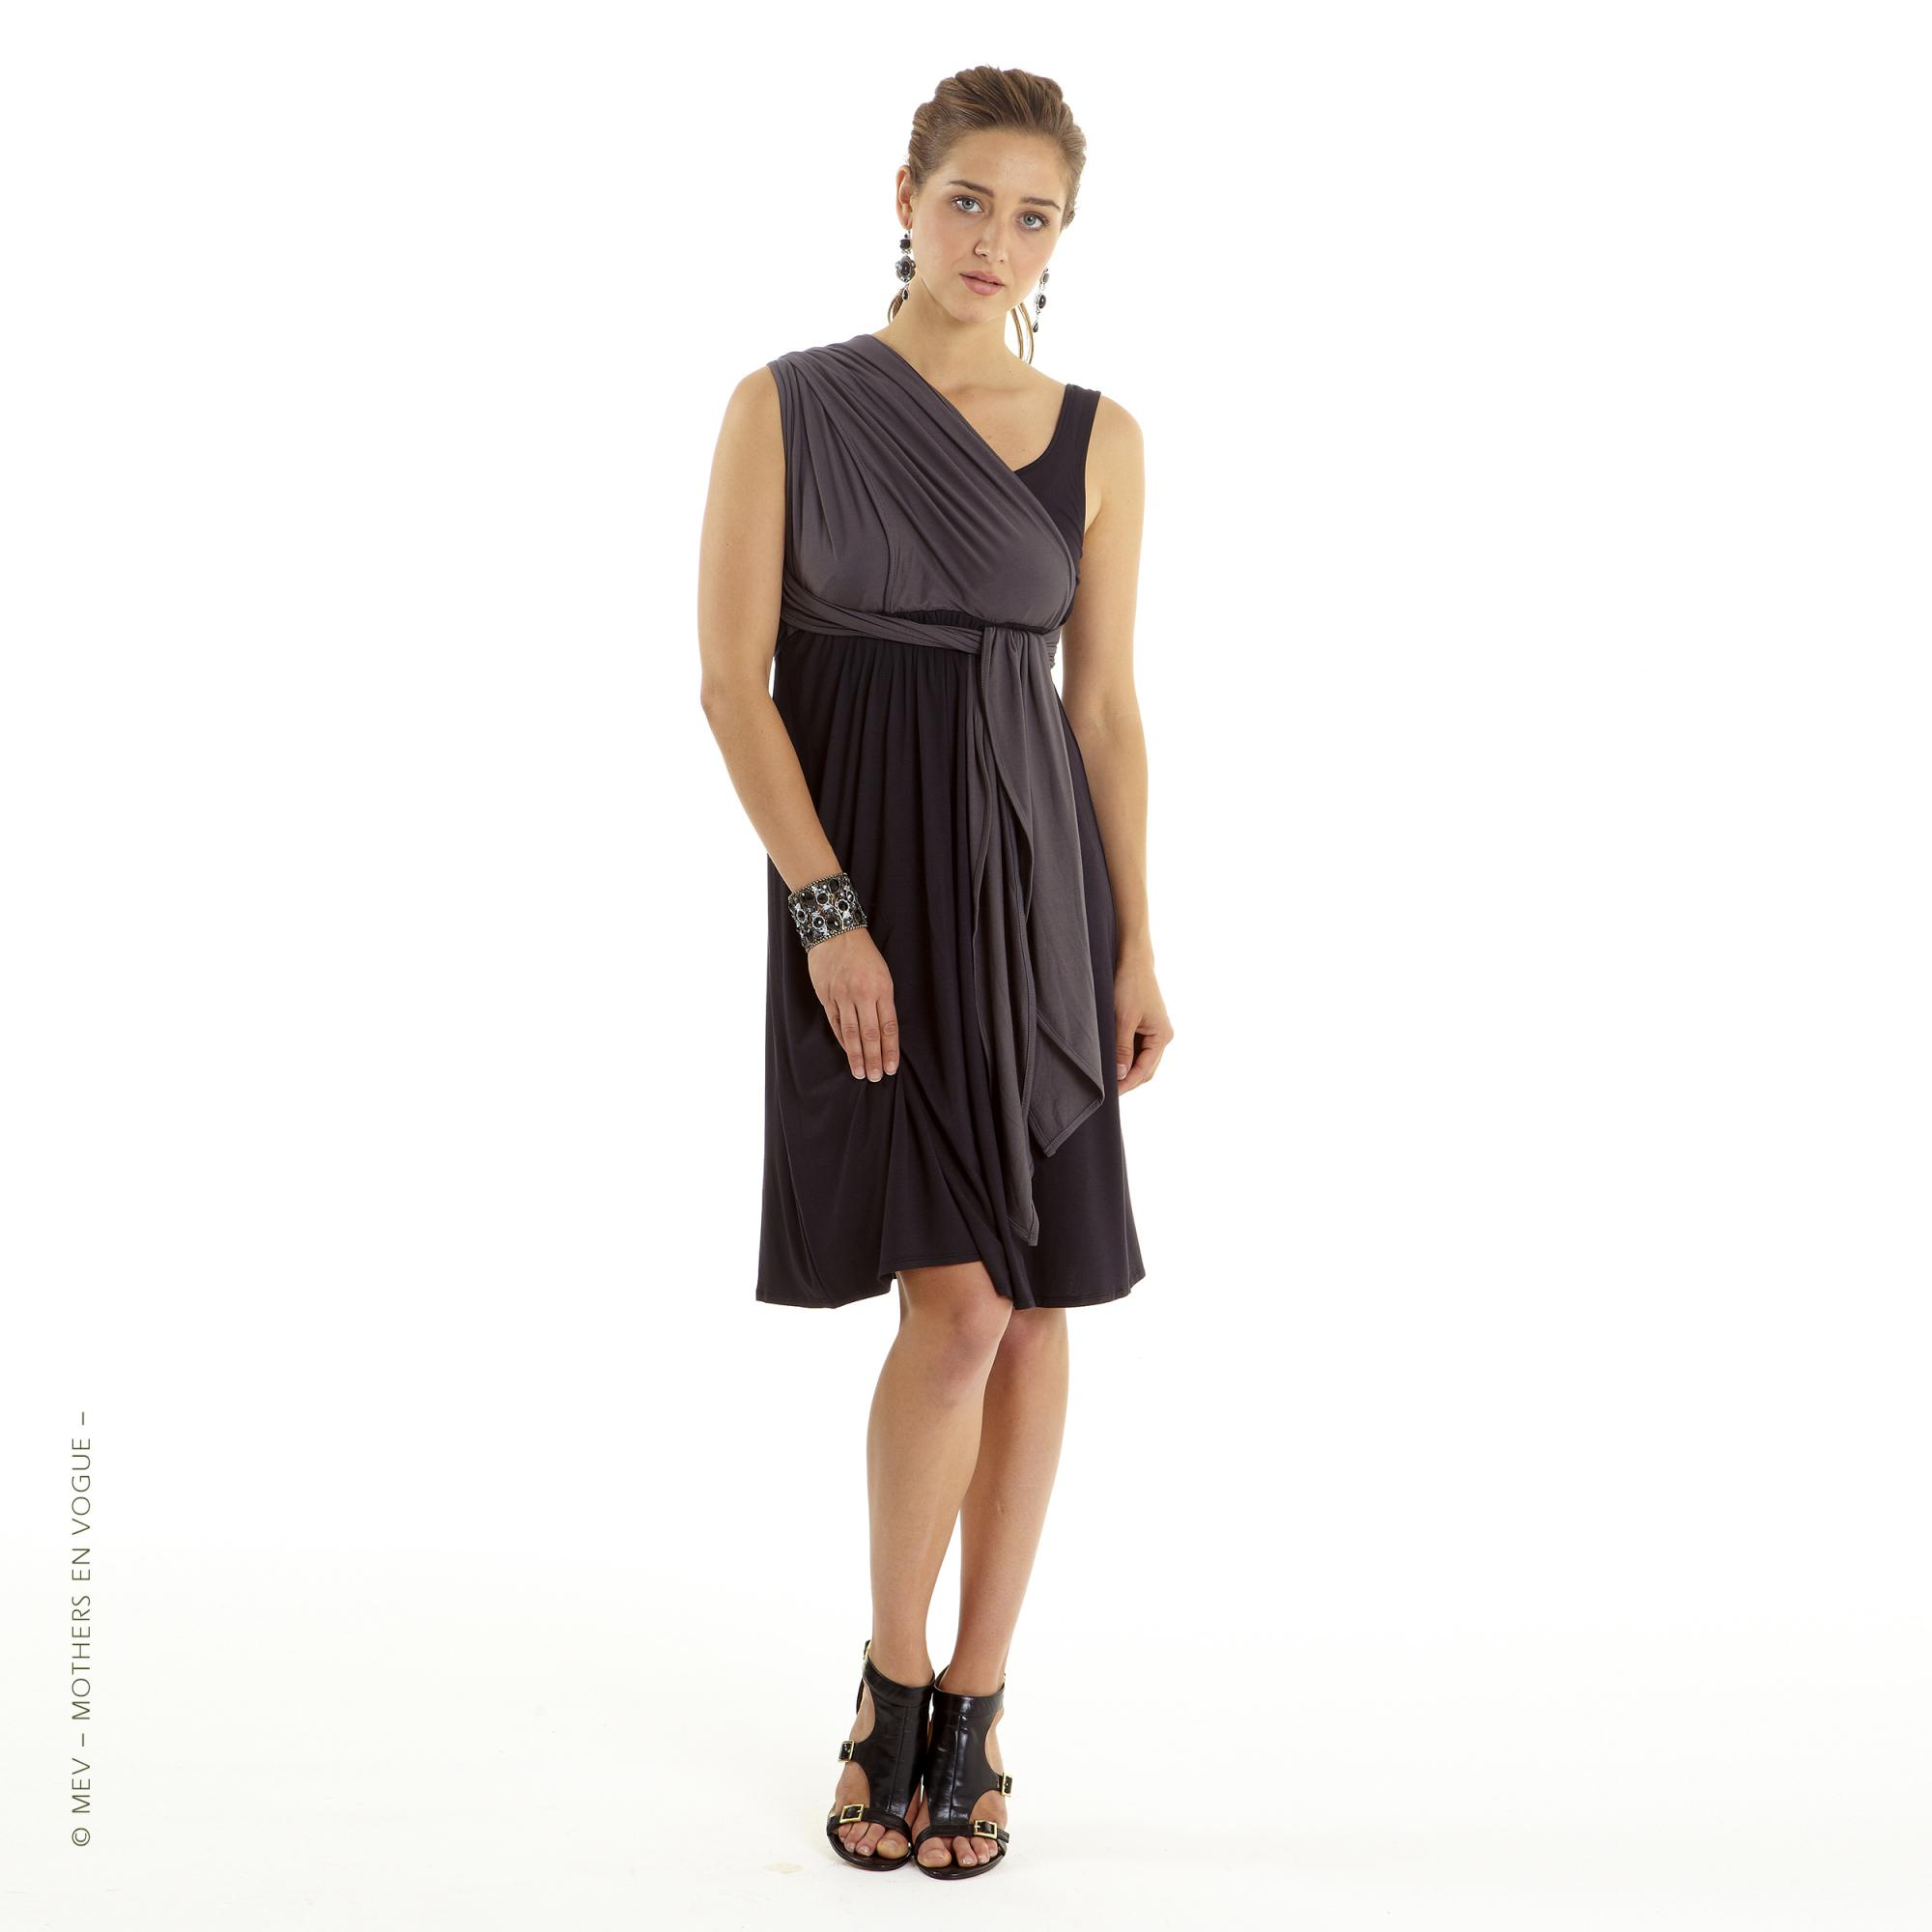 mothers-en-vogue-infinity-wrap-nursing-dress-2.jpg